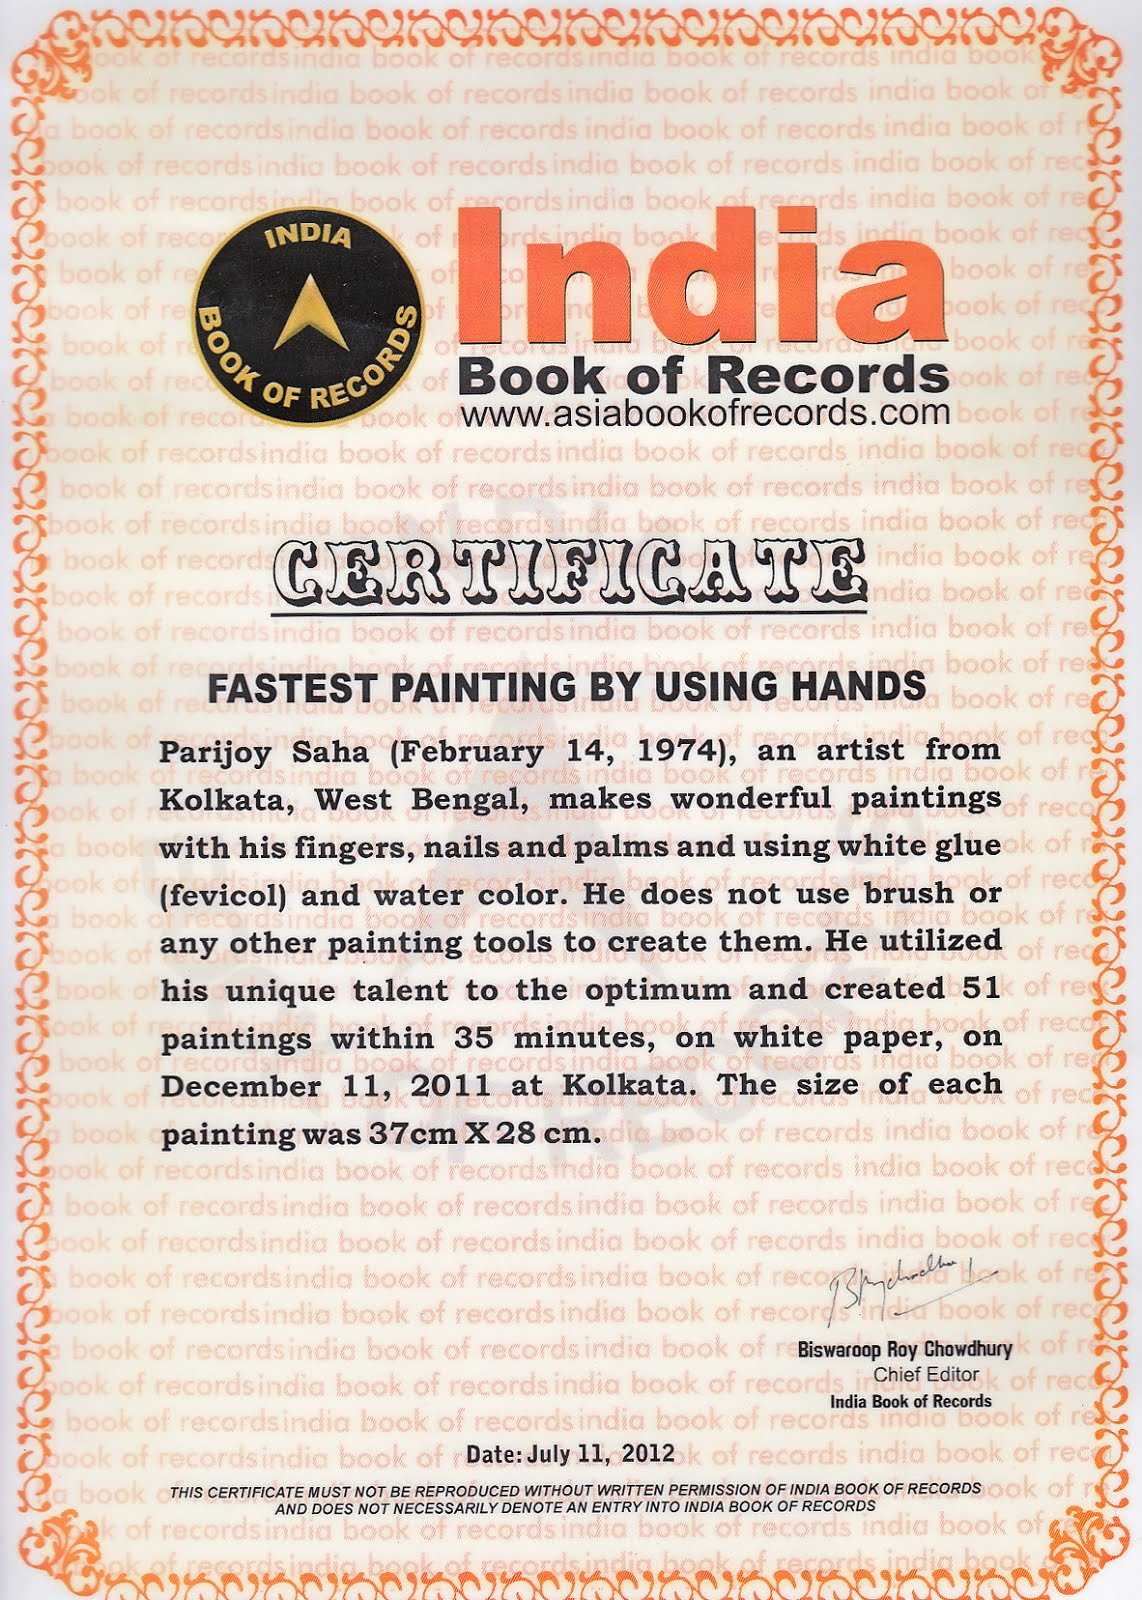 Fastest time to create 51 paintings with bare hands